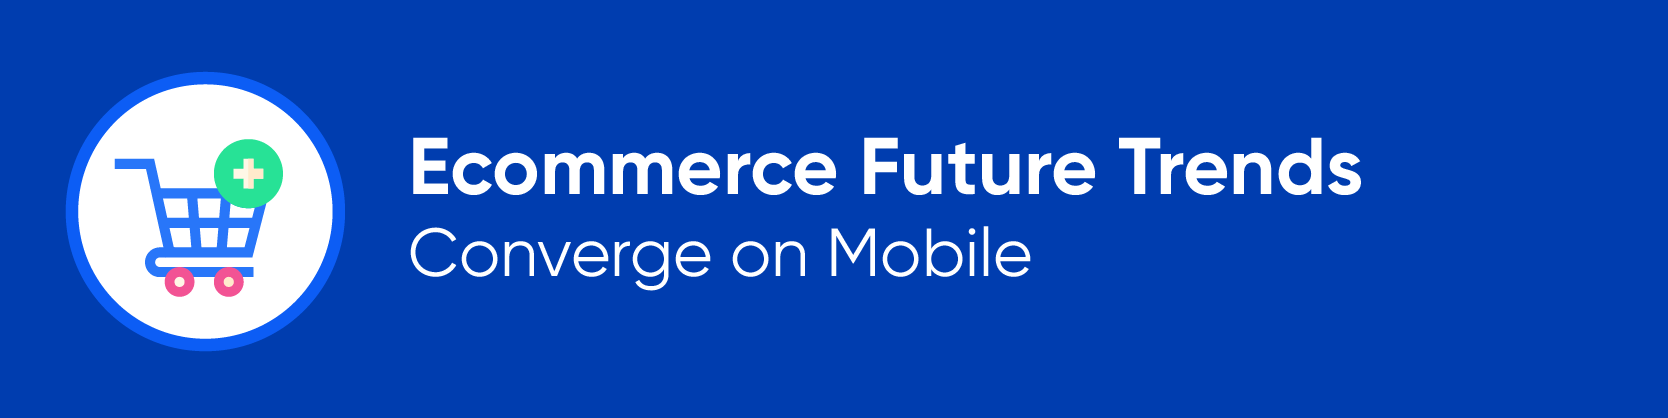 Ecommerce Future Trends Converge on Mobile